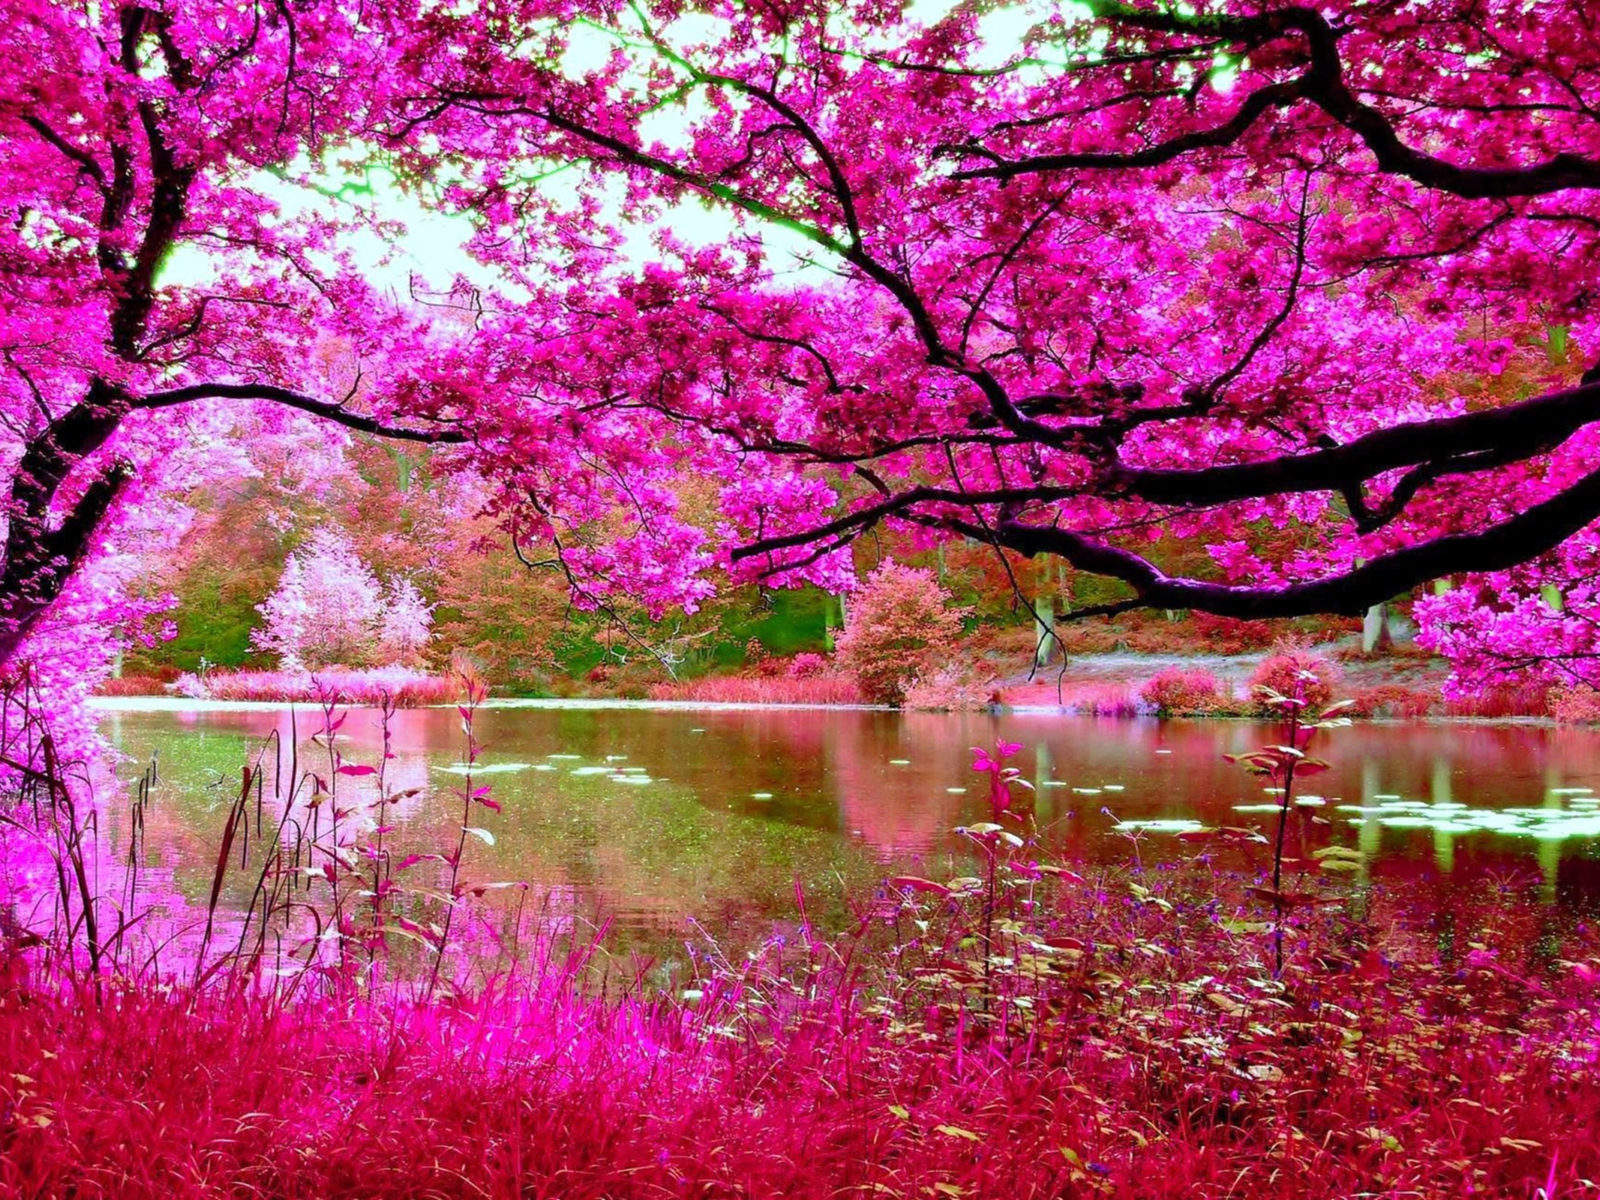 High Resolution Desktop Wallpapers Cars Cherry Blossoms Spring Pink Cherry Tree River Nature Hd